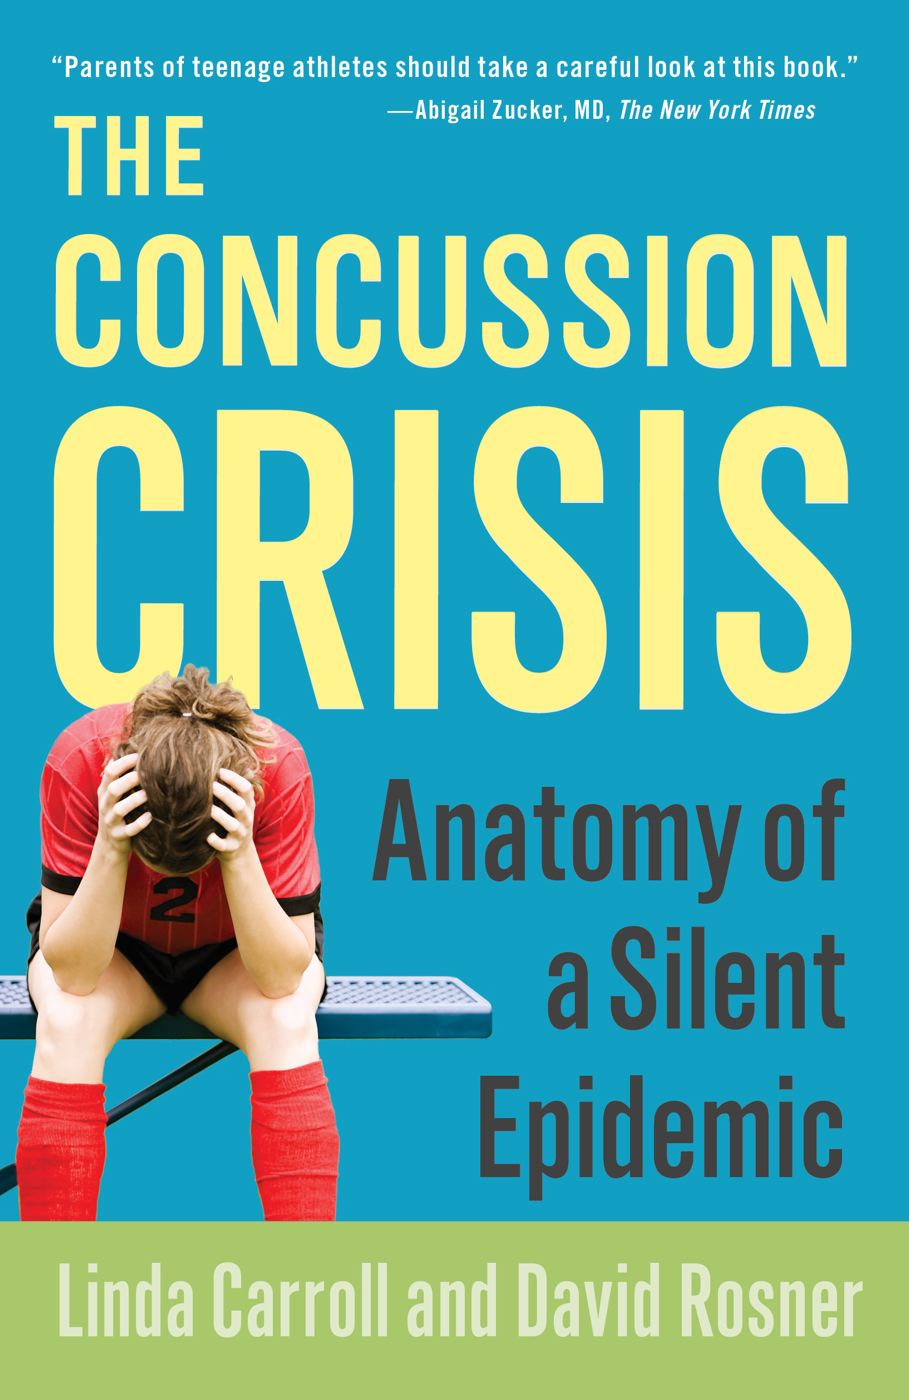 The Concussion Crisis By: David Rosner,Linda Carroll